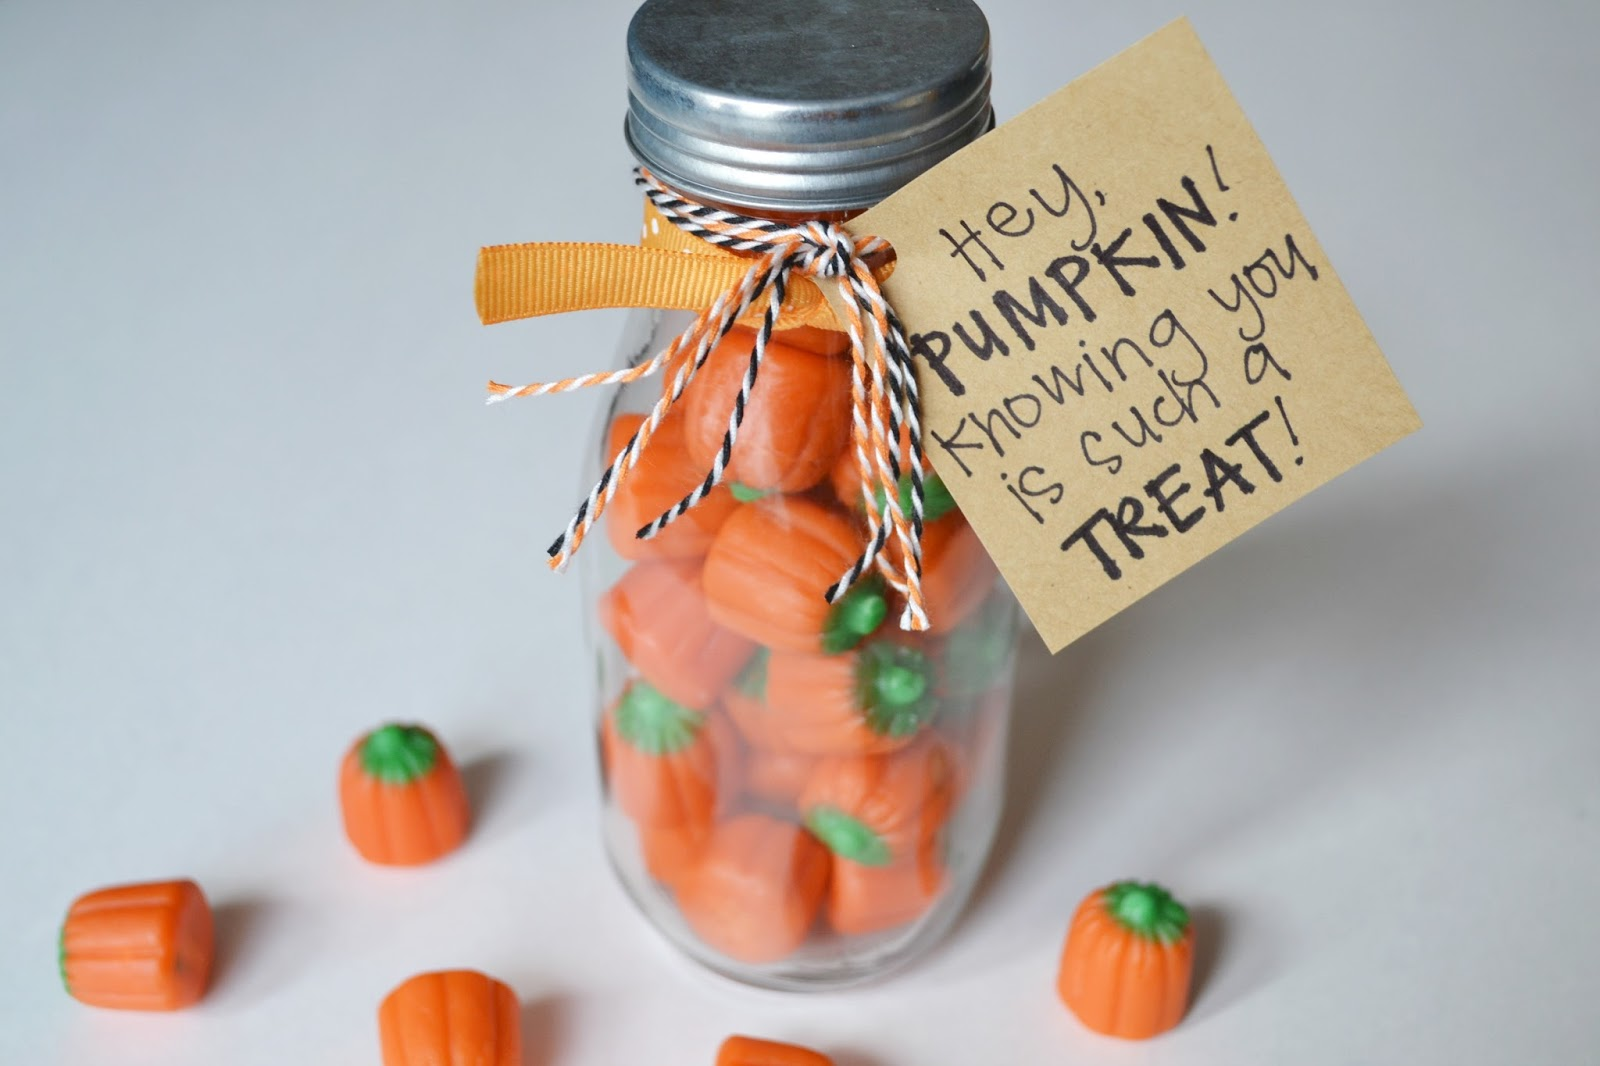 halloween gift, halloween candy, candy, black and orange, treat, pumpkins, pumpkin, thank you gift, gift, note, friends